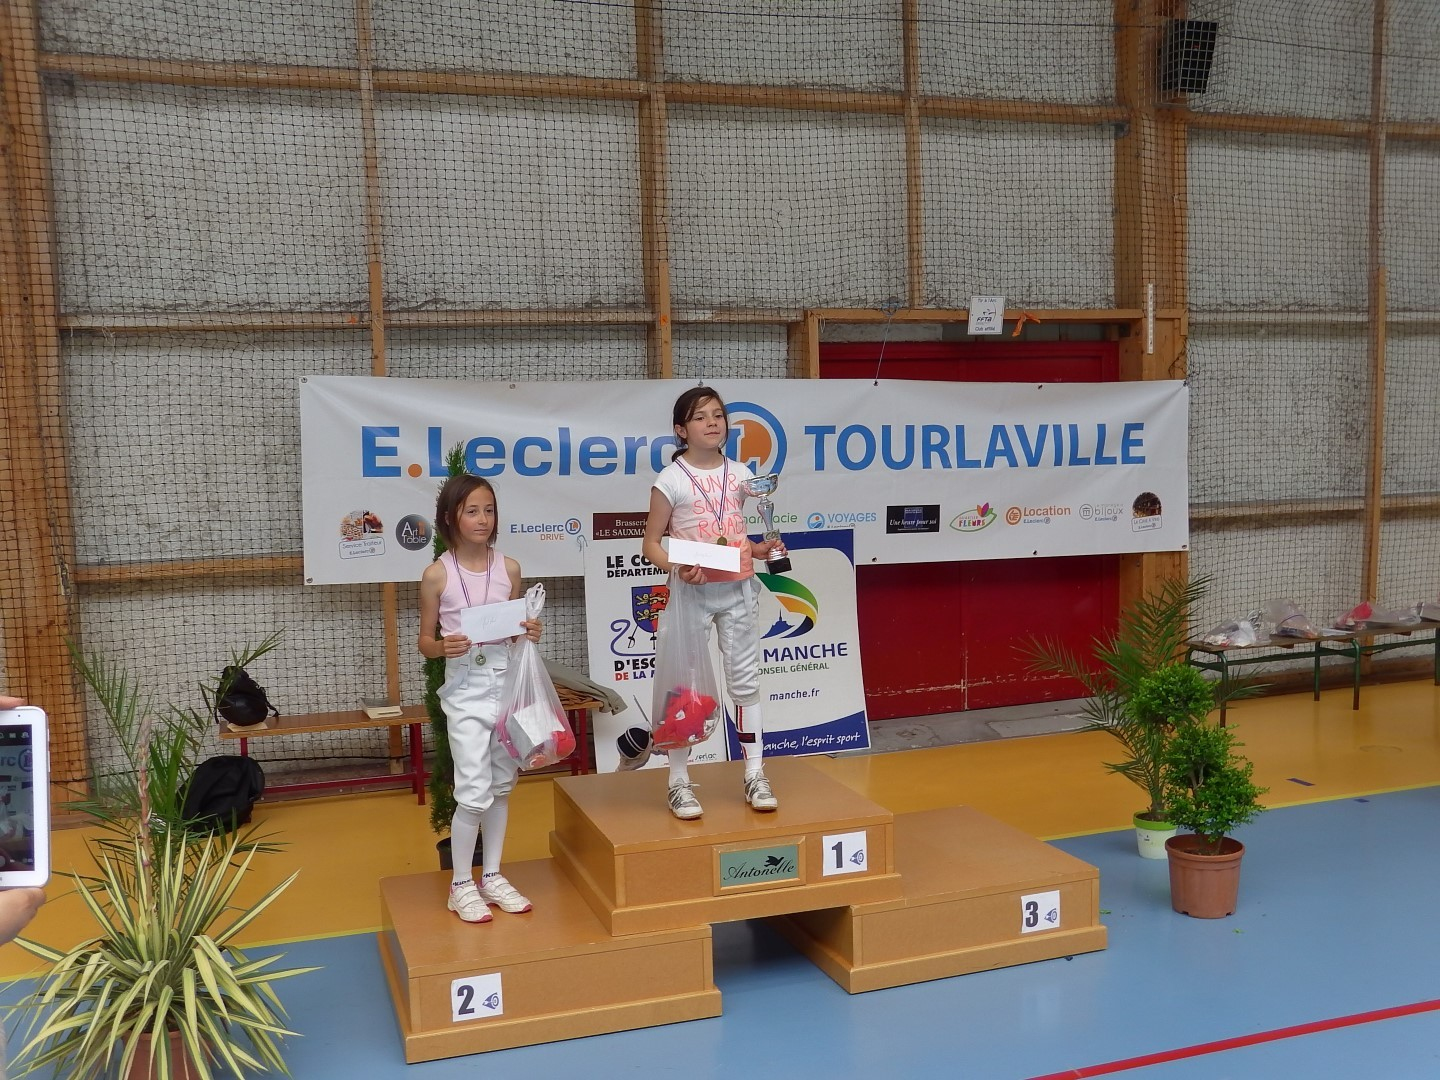 podium pupillette avec Prunylle sur la seconde marche